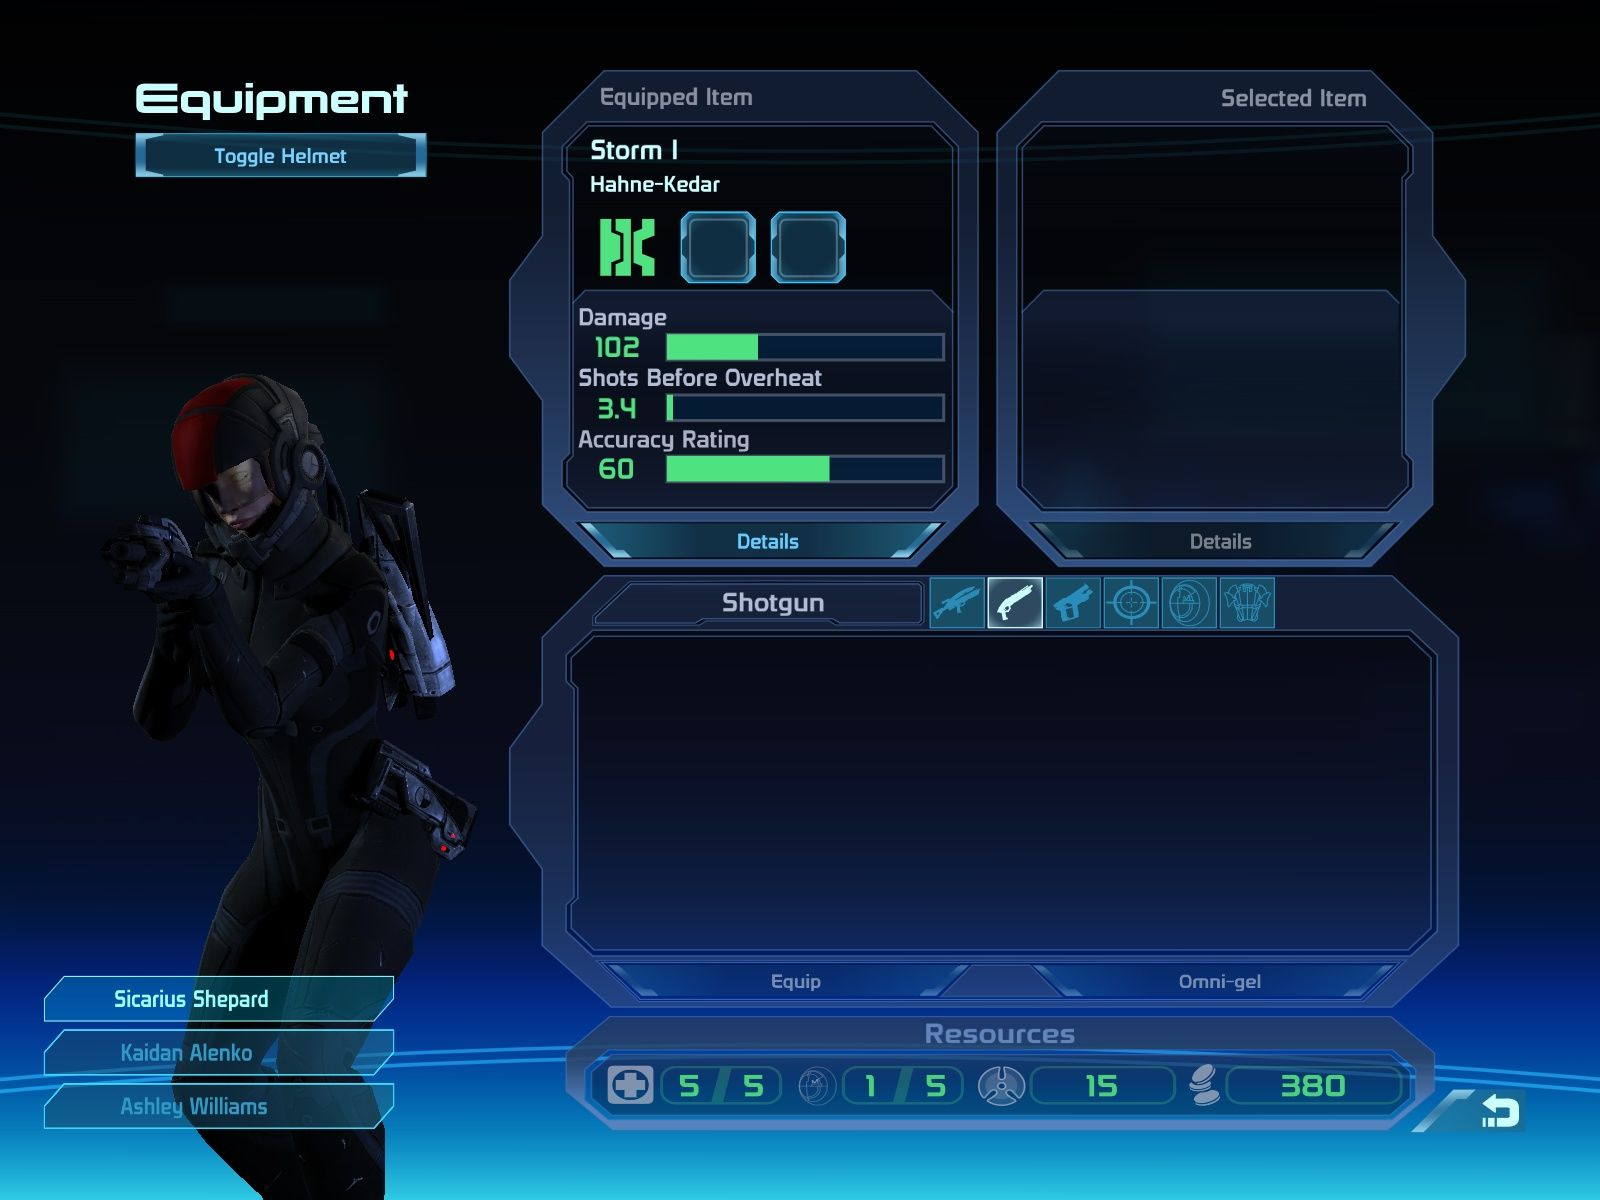 Mass Effect Windows The inventory